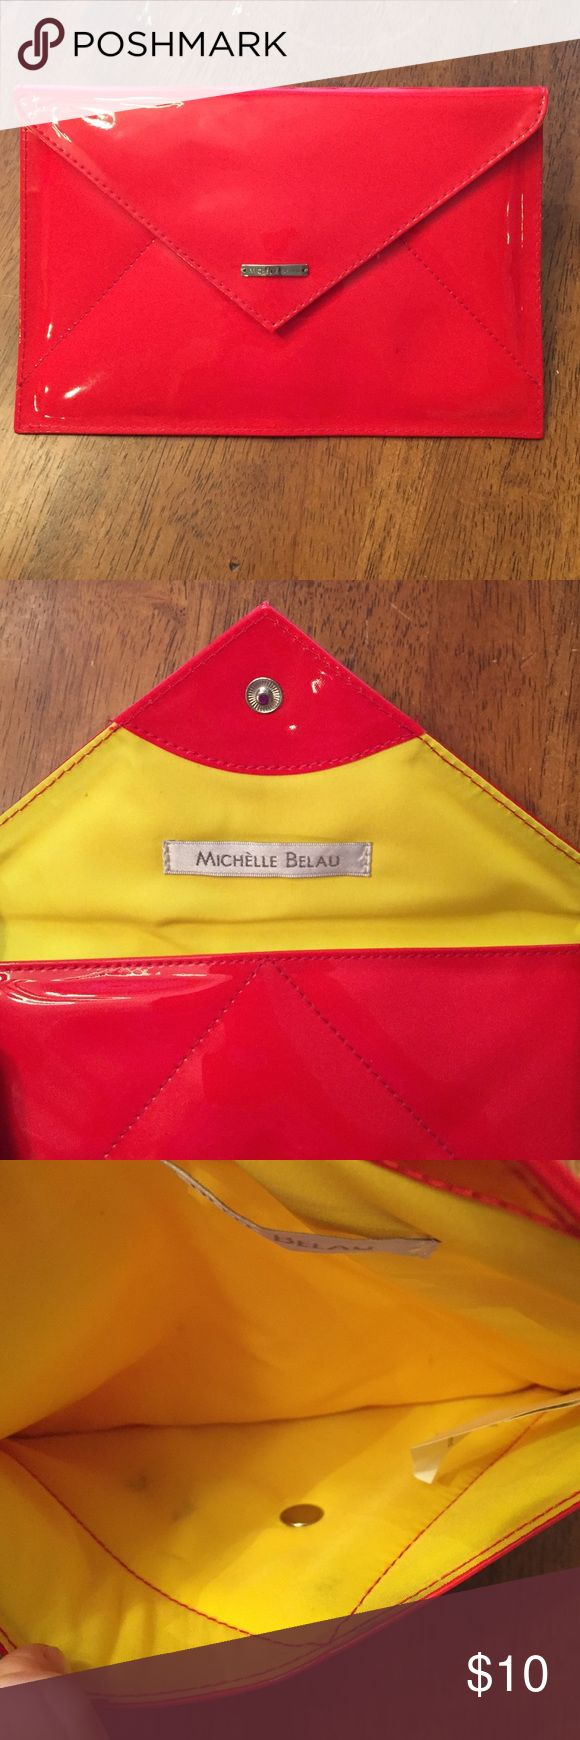 Michelle Belau envelope purse red and yellow Michelle Belau red and yellow envelope purse or cosmetic bag. This bag does have some exterior pen marks and the interior has some make up stains. Michelle Belau Bags Clutches & Wristlets